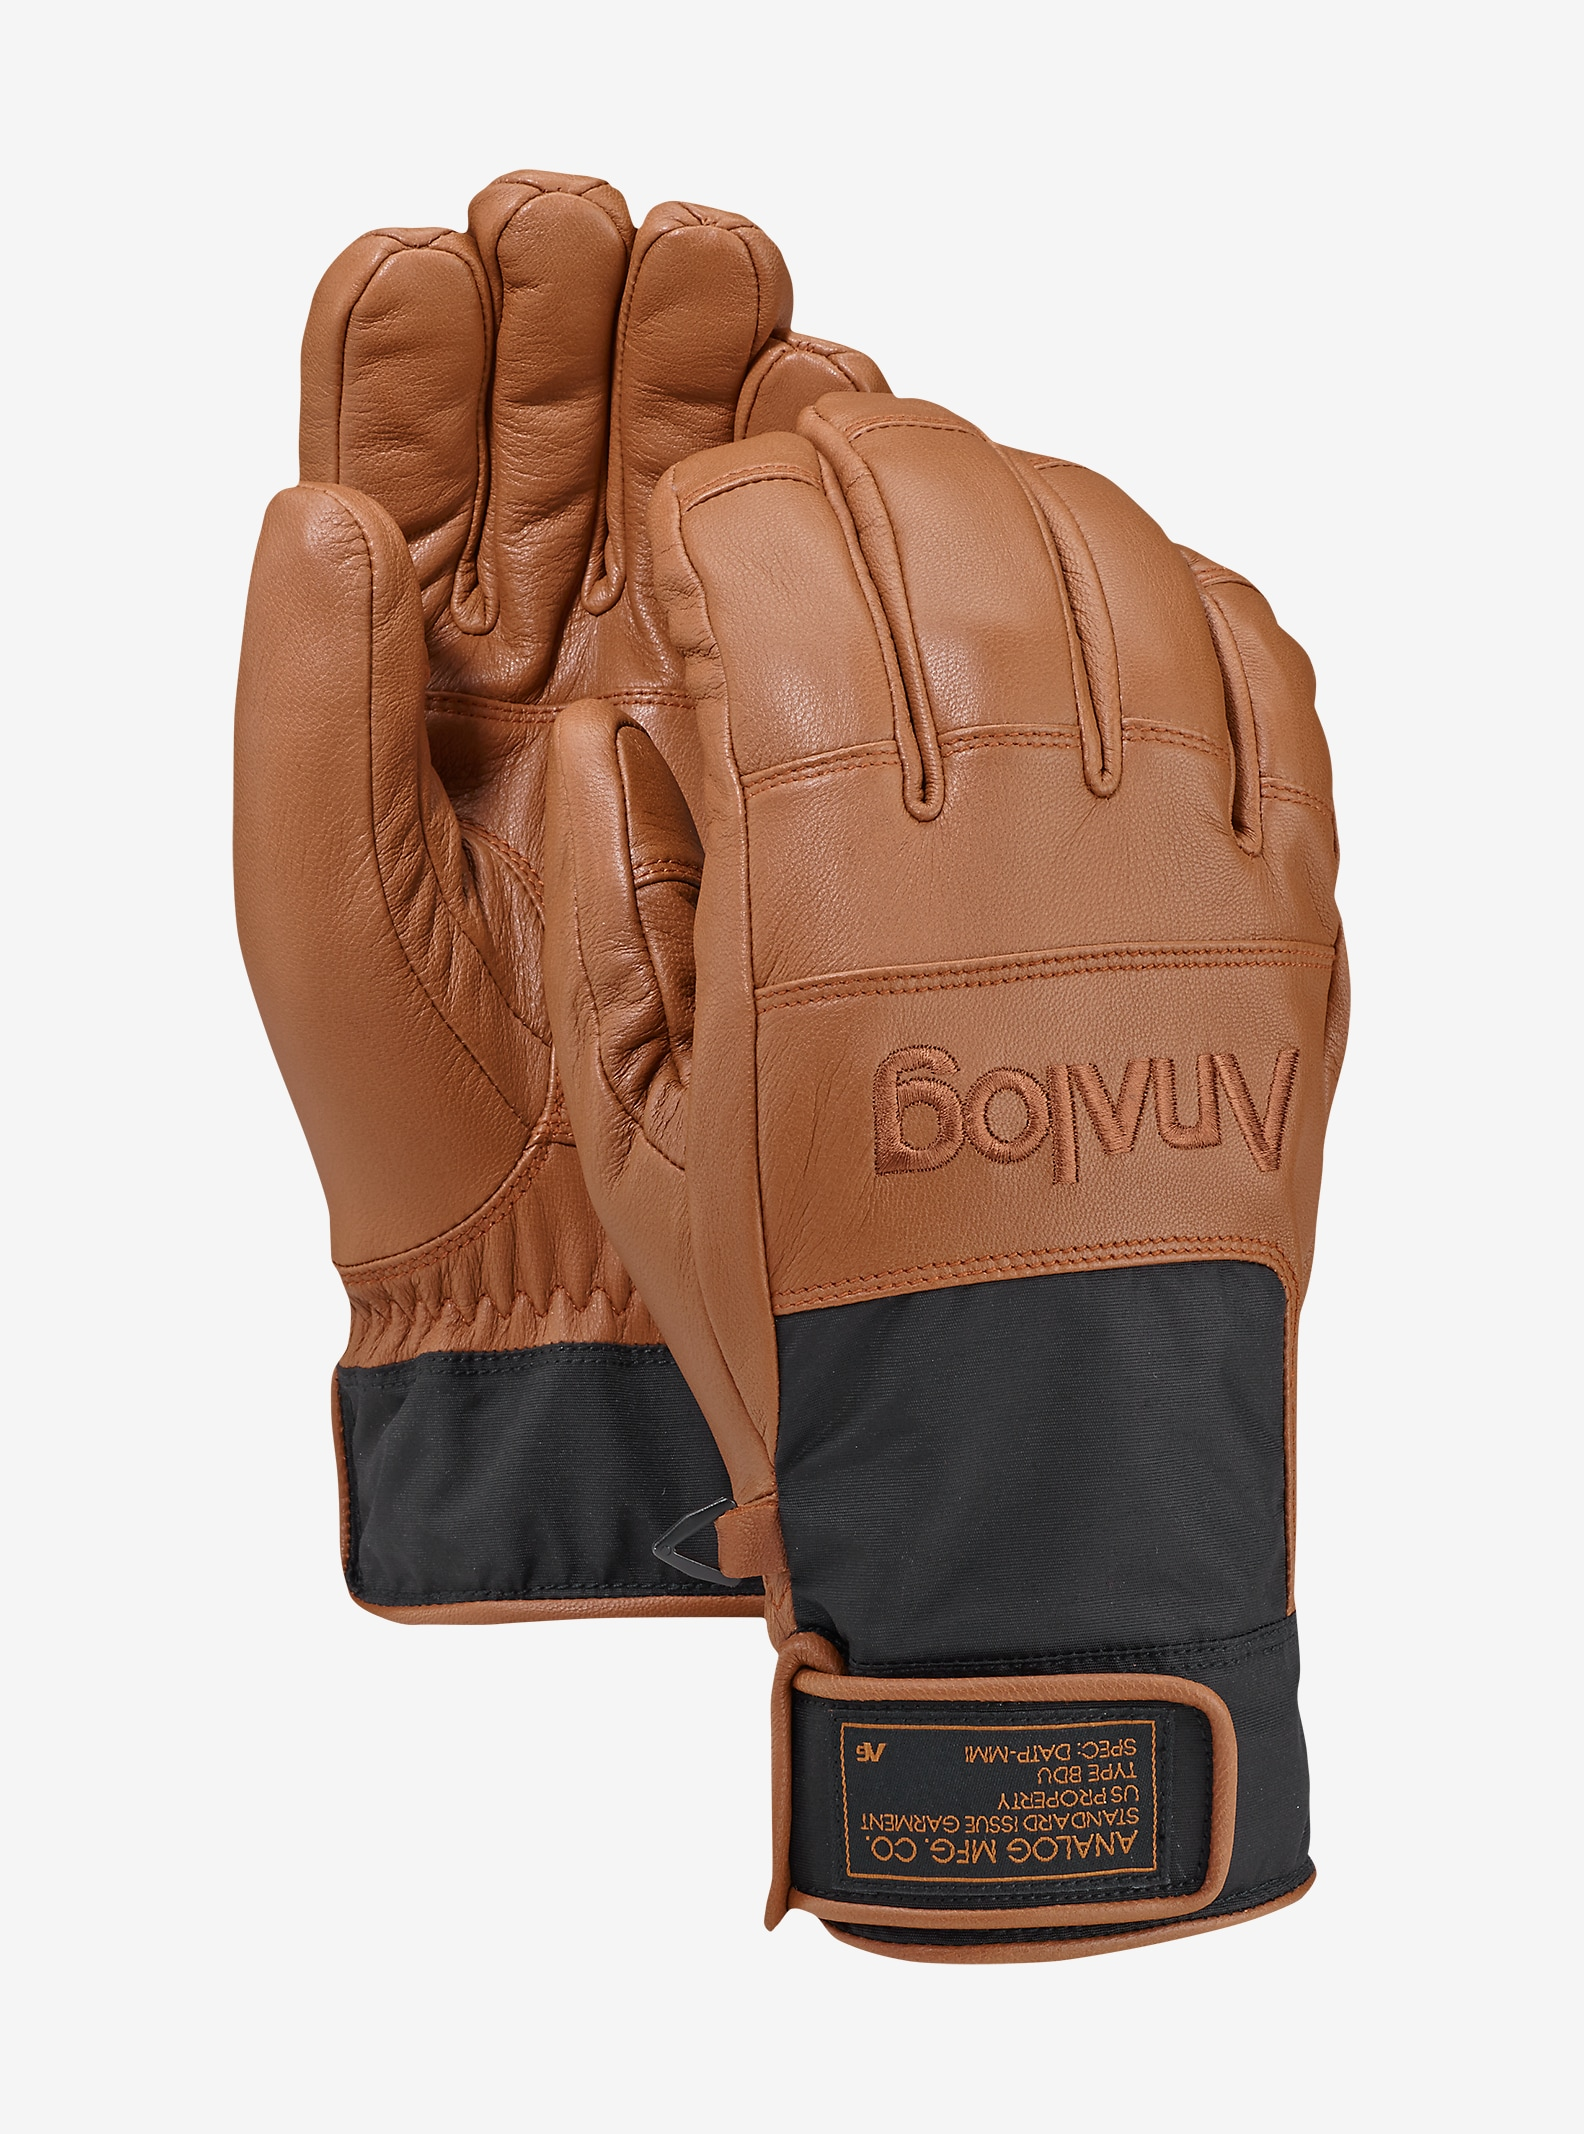 Analog Diligent Glove shown in Copper Leather